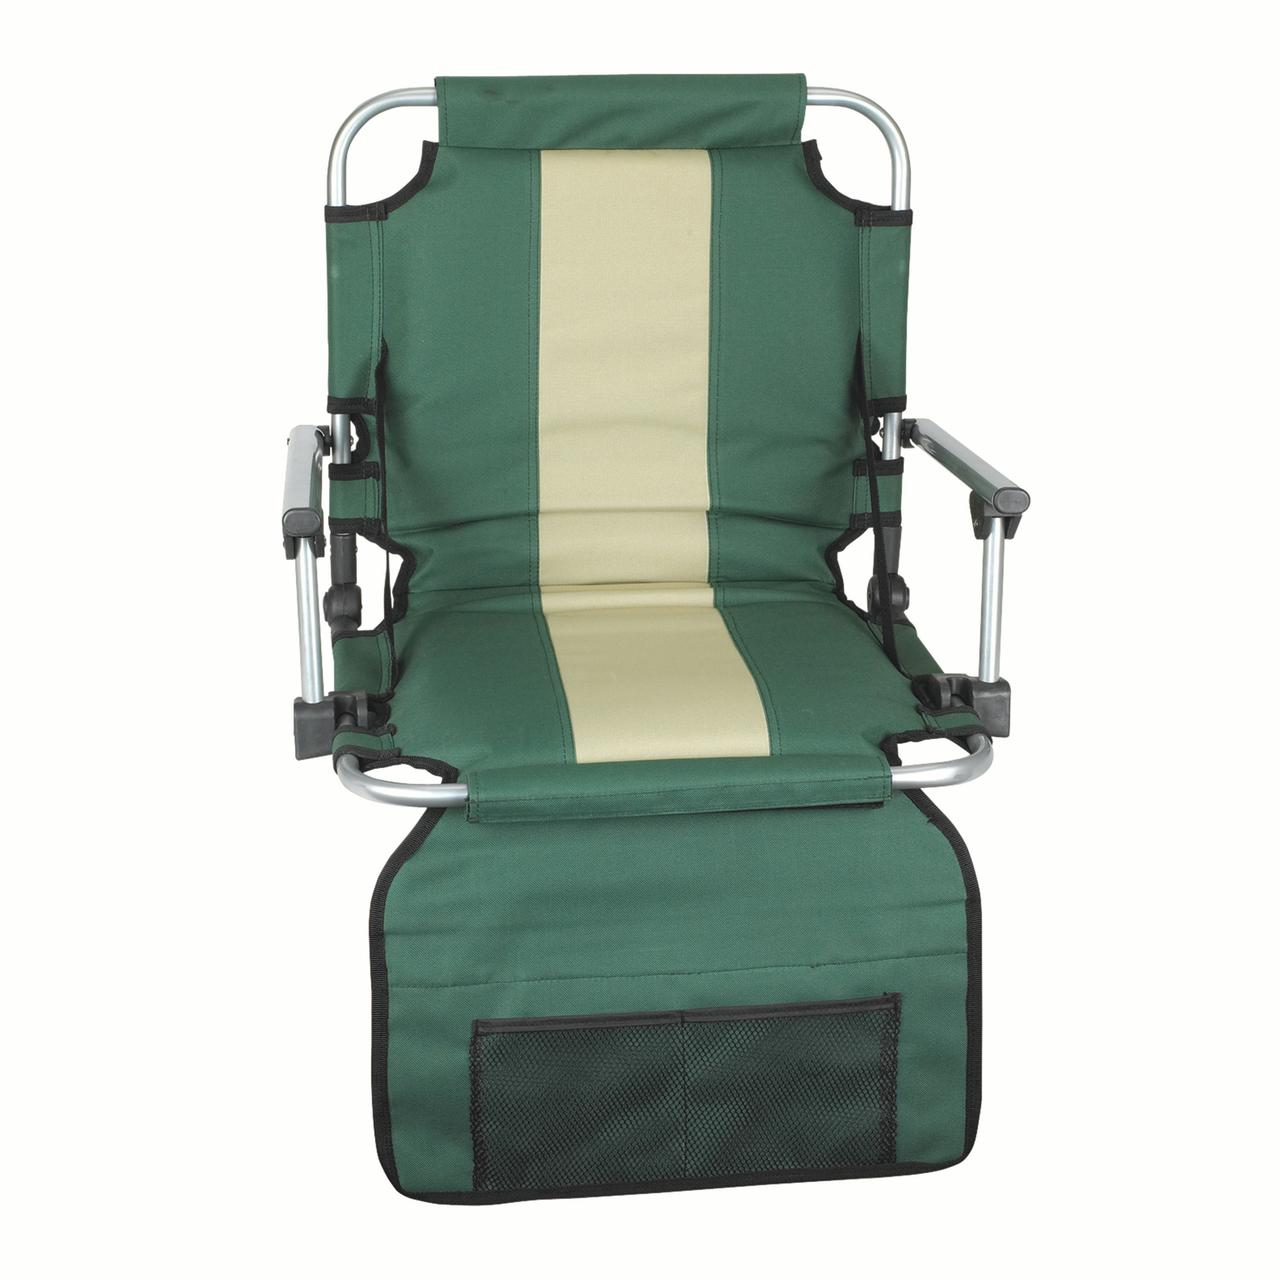 Stansport Stadium Seat with Arms - Green/Tan Stripe